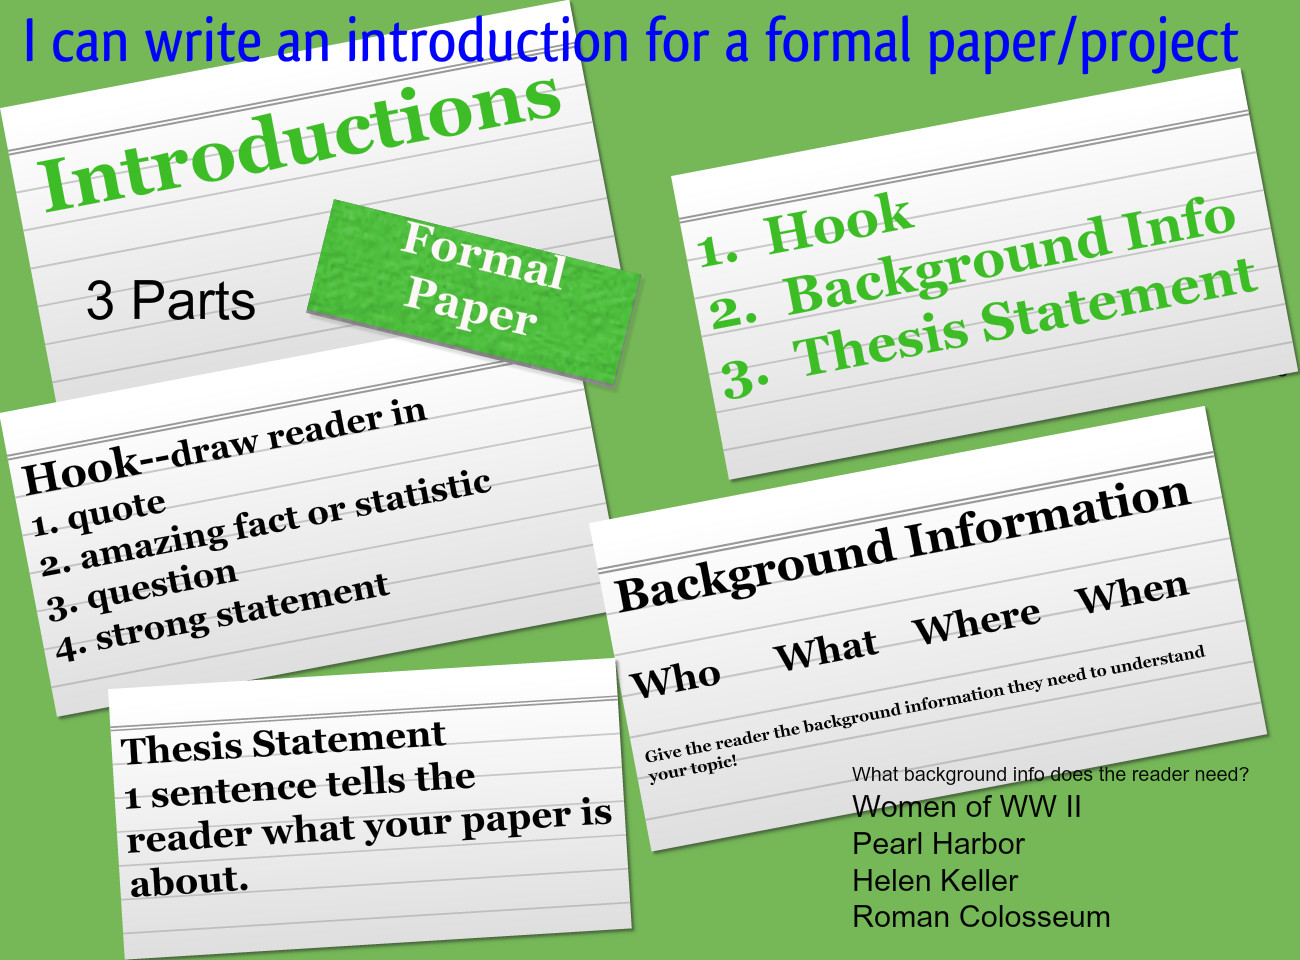 Introductions for Formal Paper